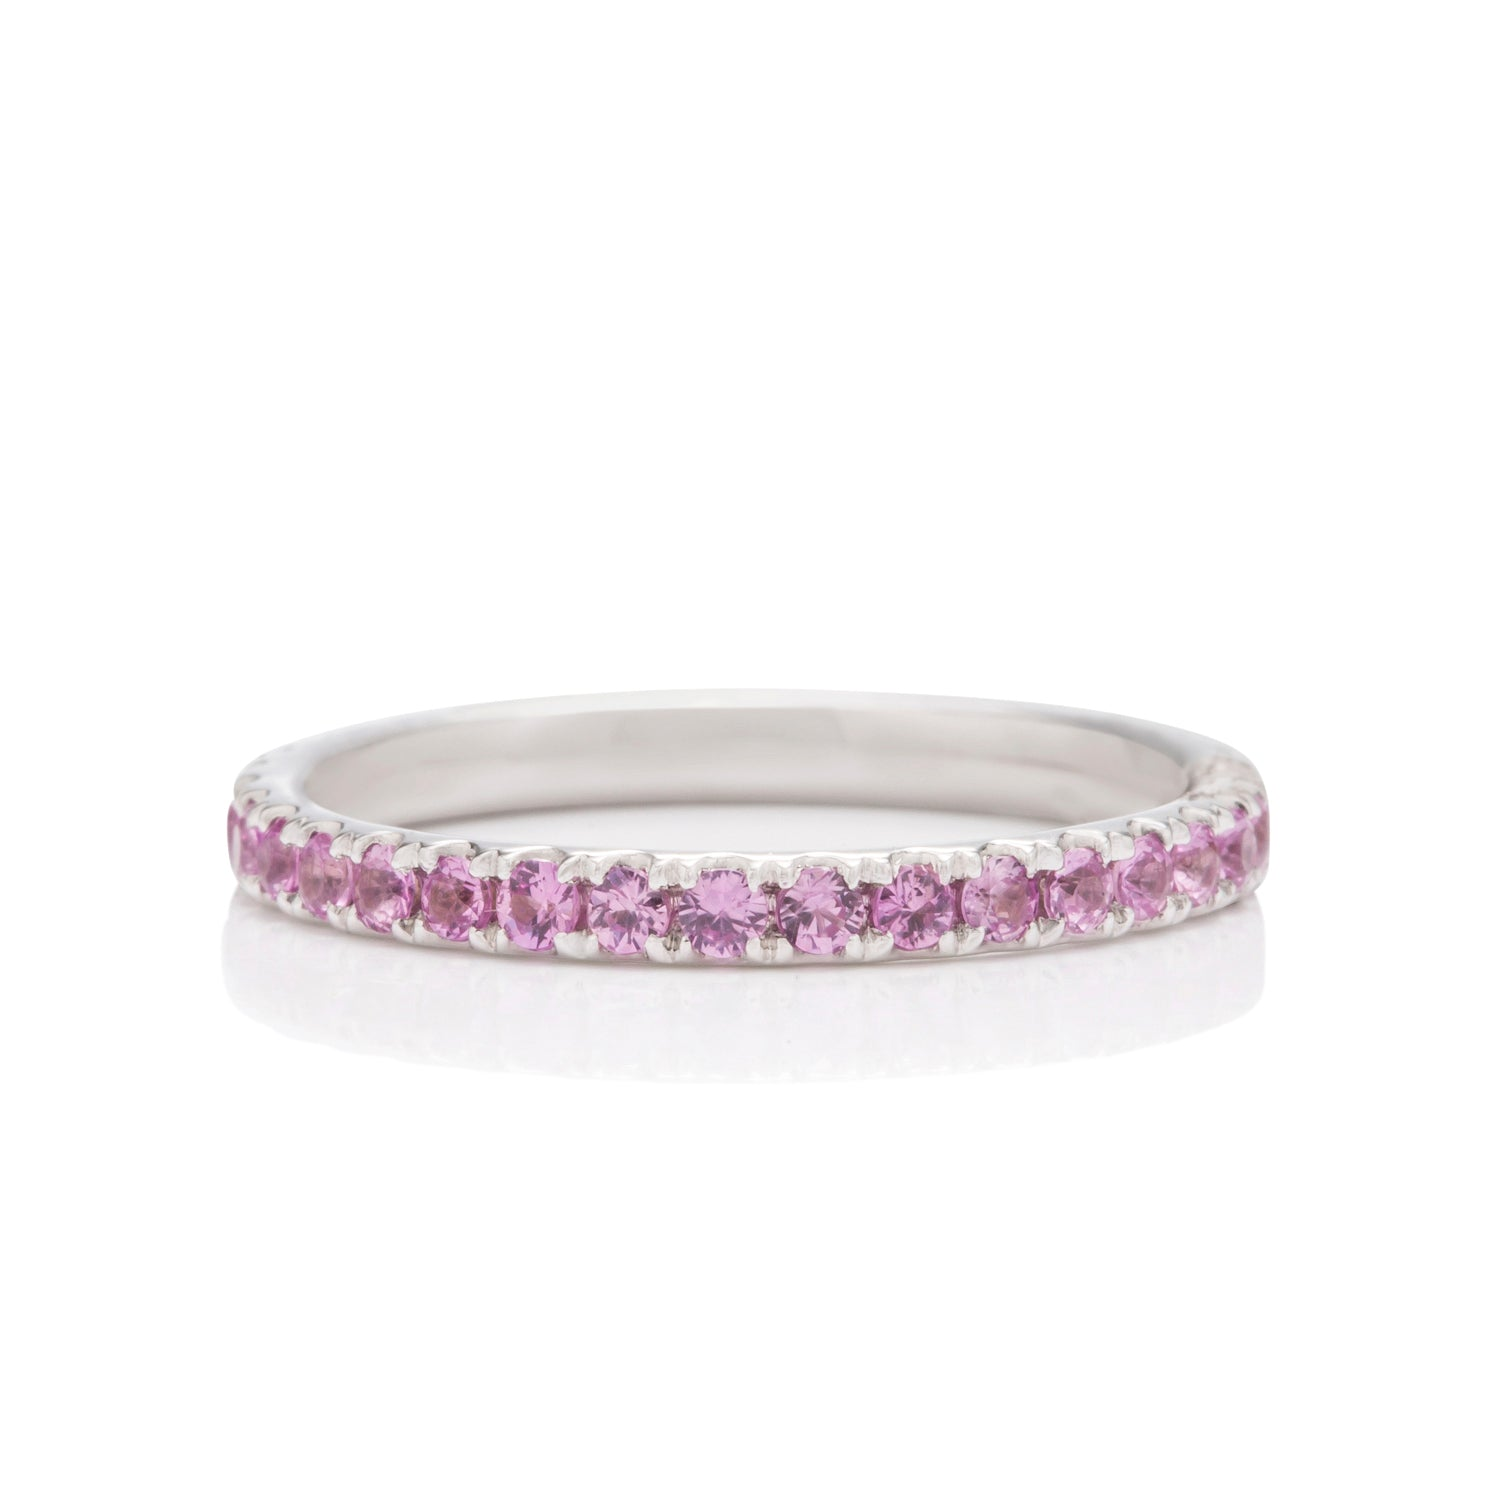 Pink Sapphire and White Gold Eternity Band - Charles Koll Jewellers